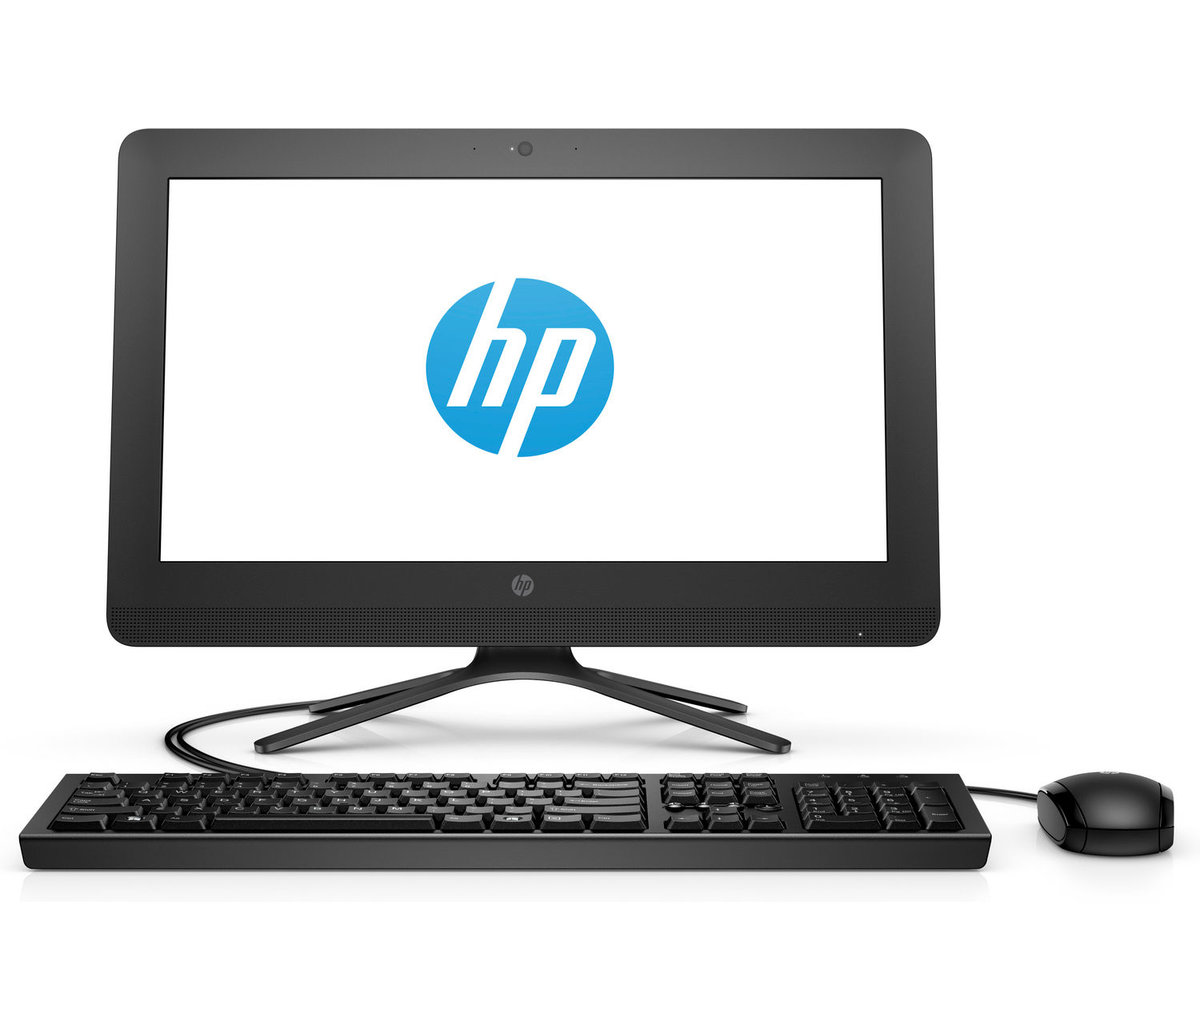 HP 20-c419in All-in-One Desktop PC